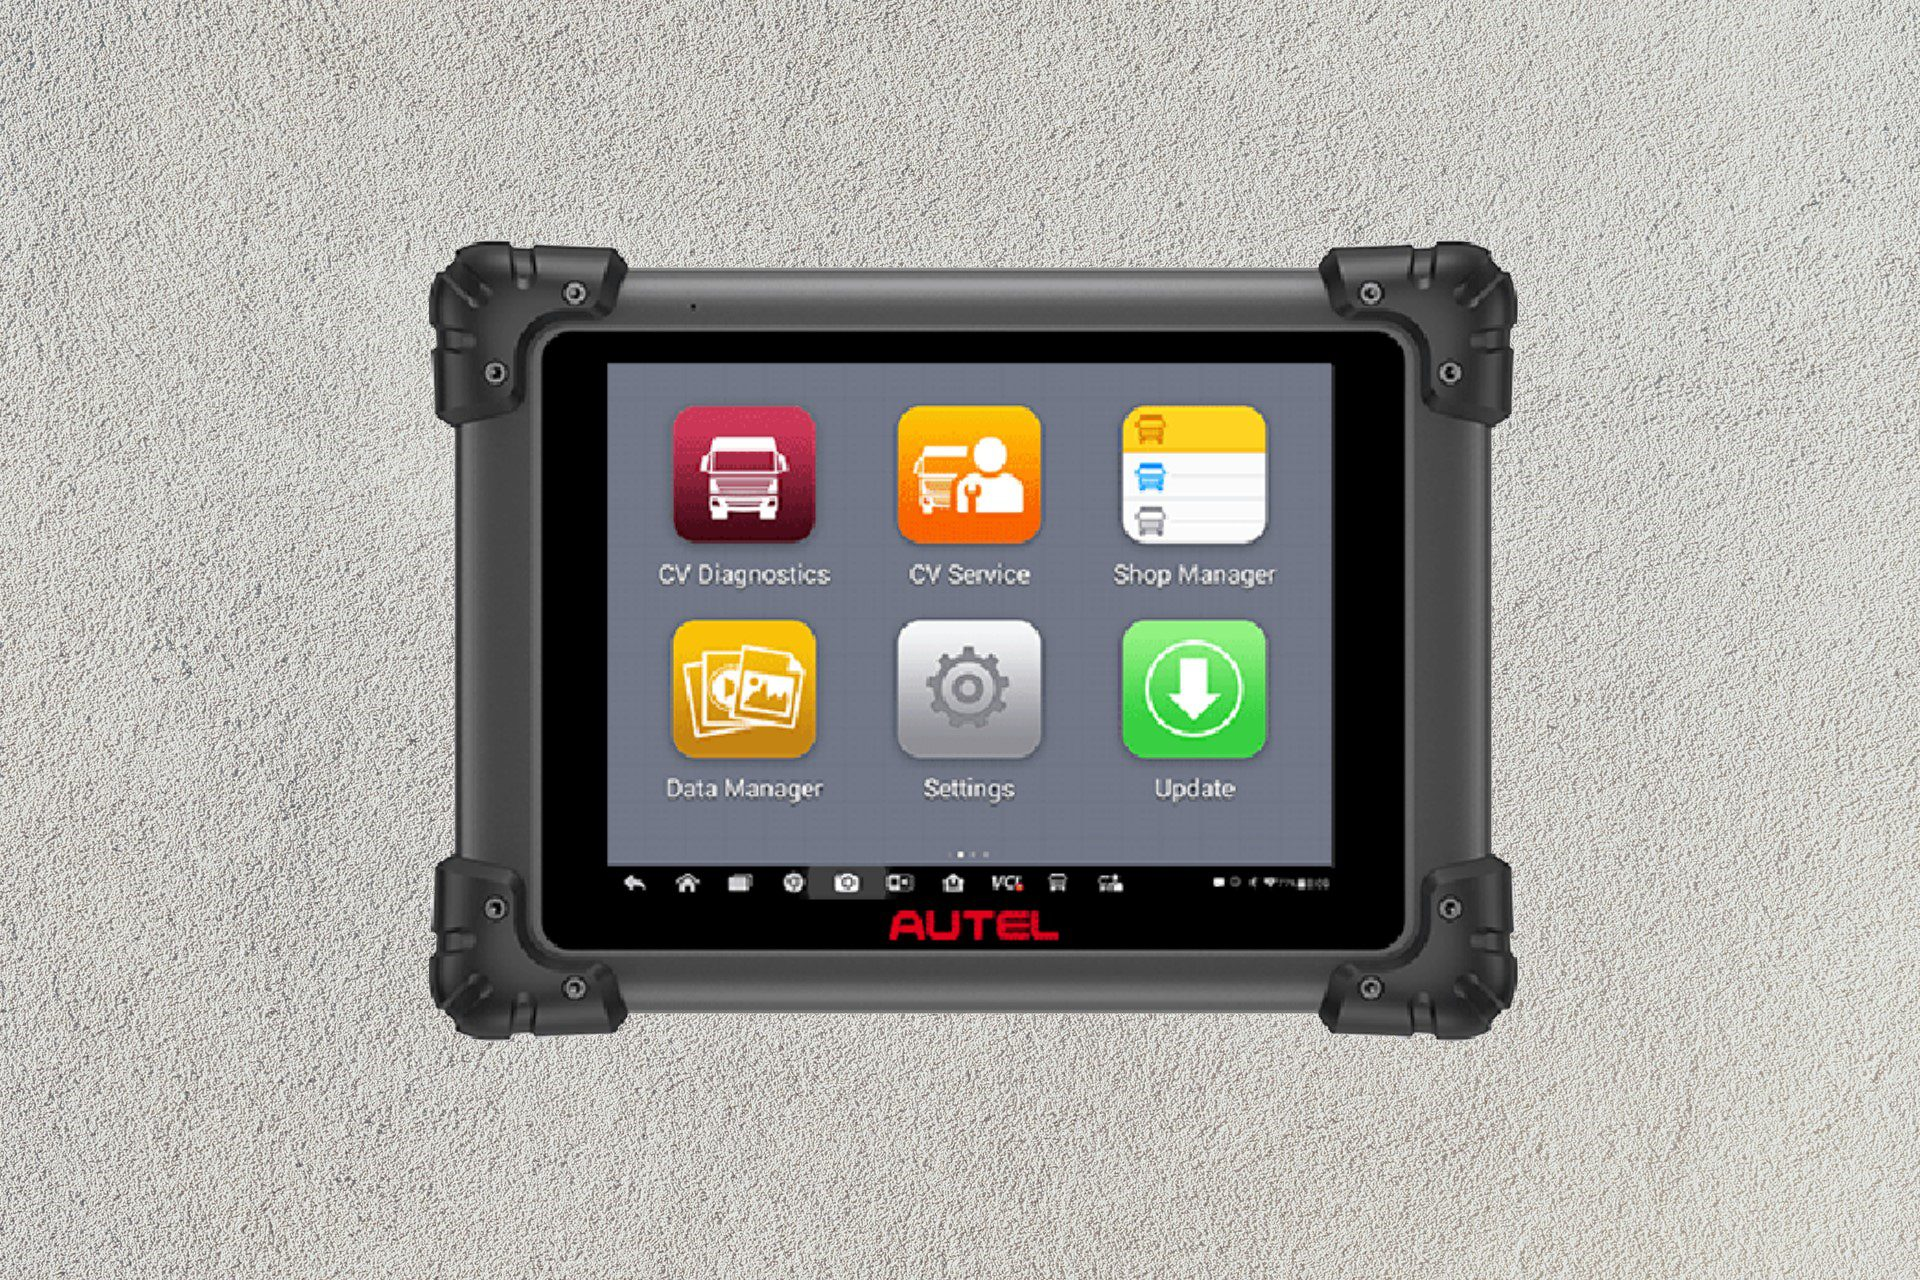 Autel MaxiSYS MS908CV on a tablet over a grey background